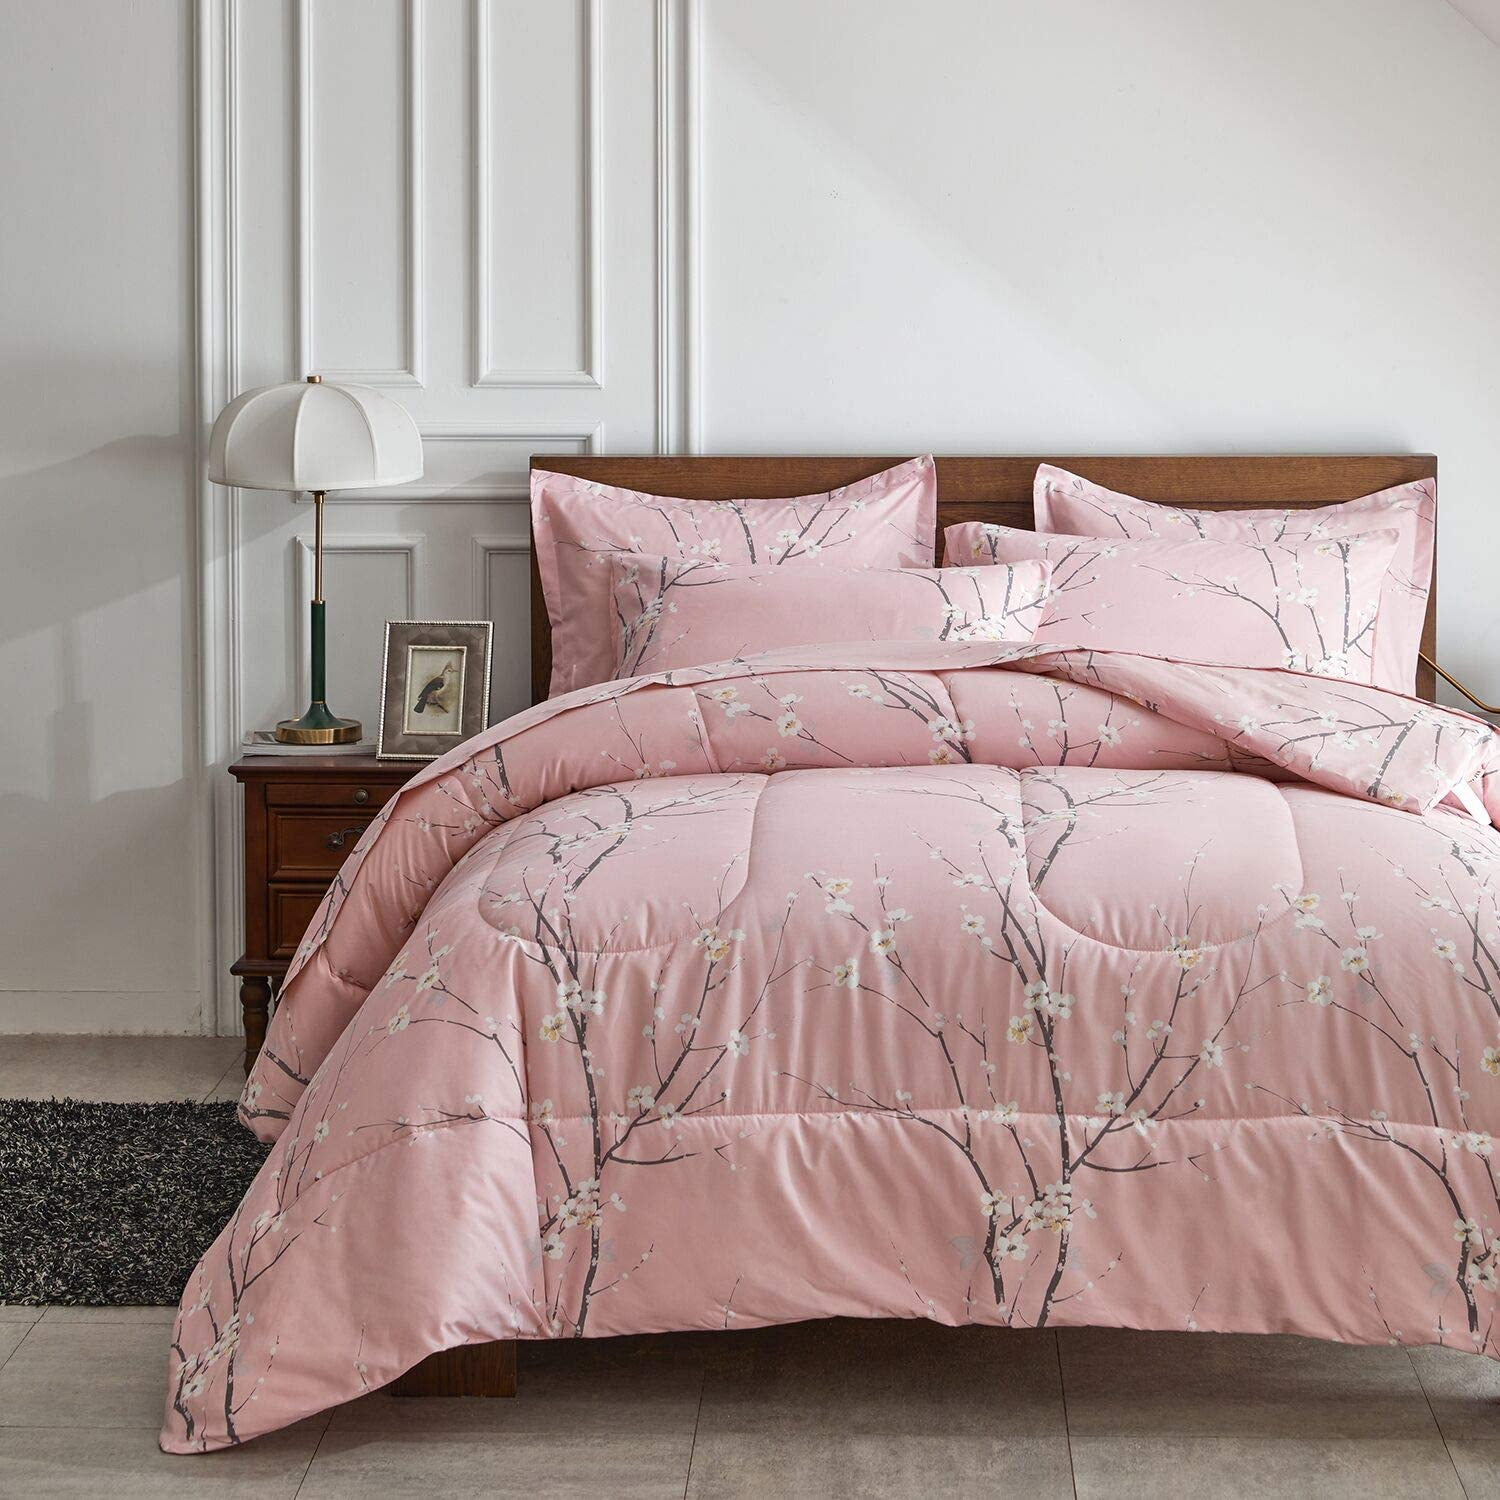 High order AIKASY Bed in a Bag 7 Pieces Print Soft Mi Queen Floral Size New Shipping Free Shipping -